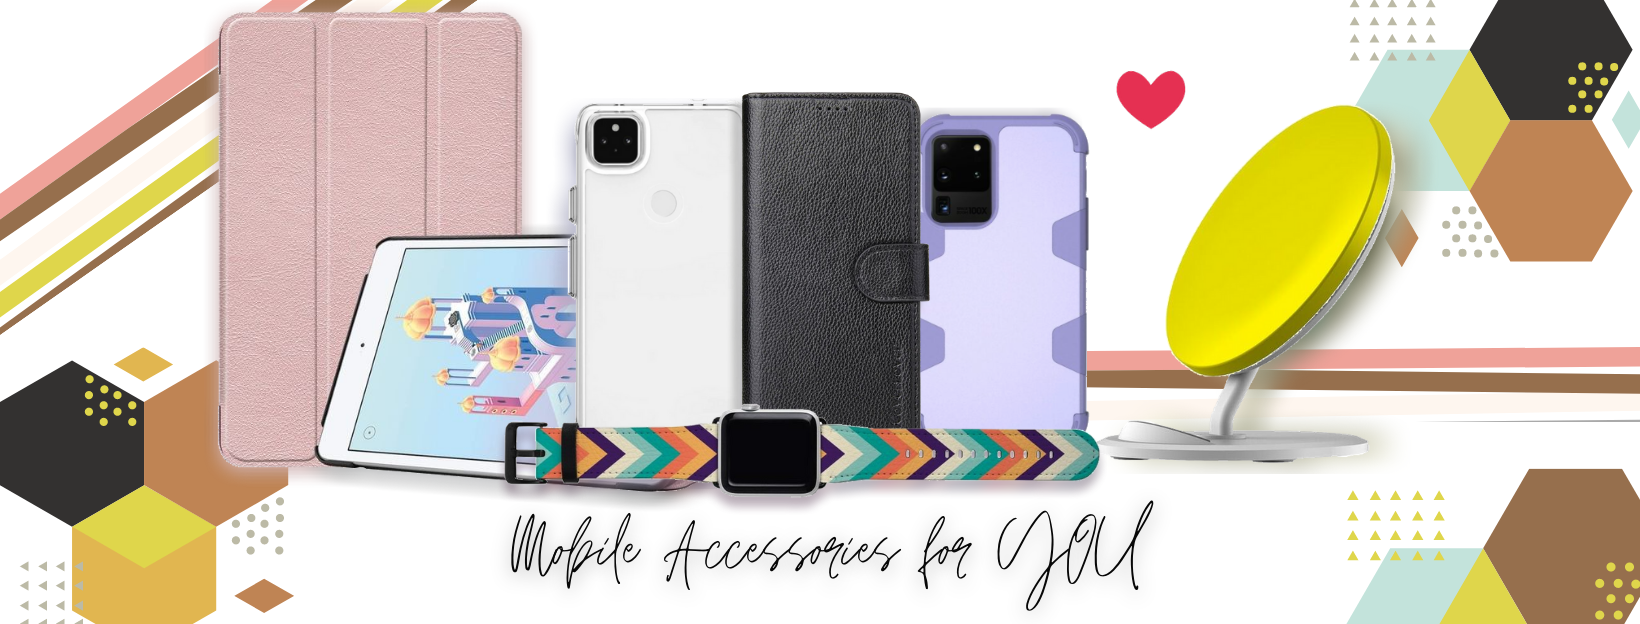 mobile-accessories-for-you-fall-fb.png